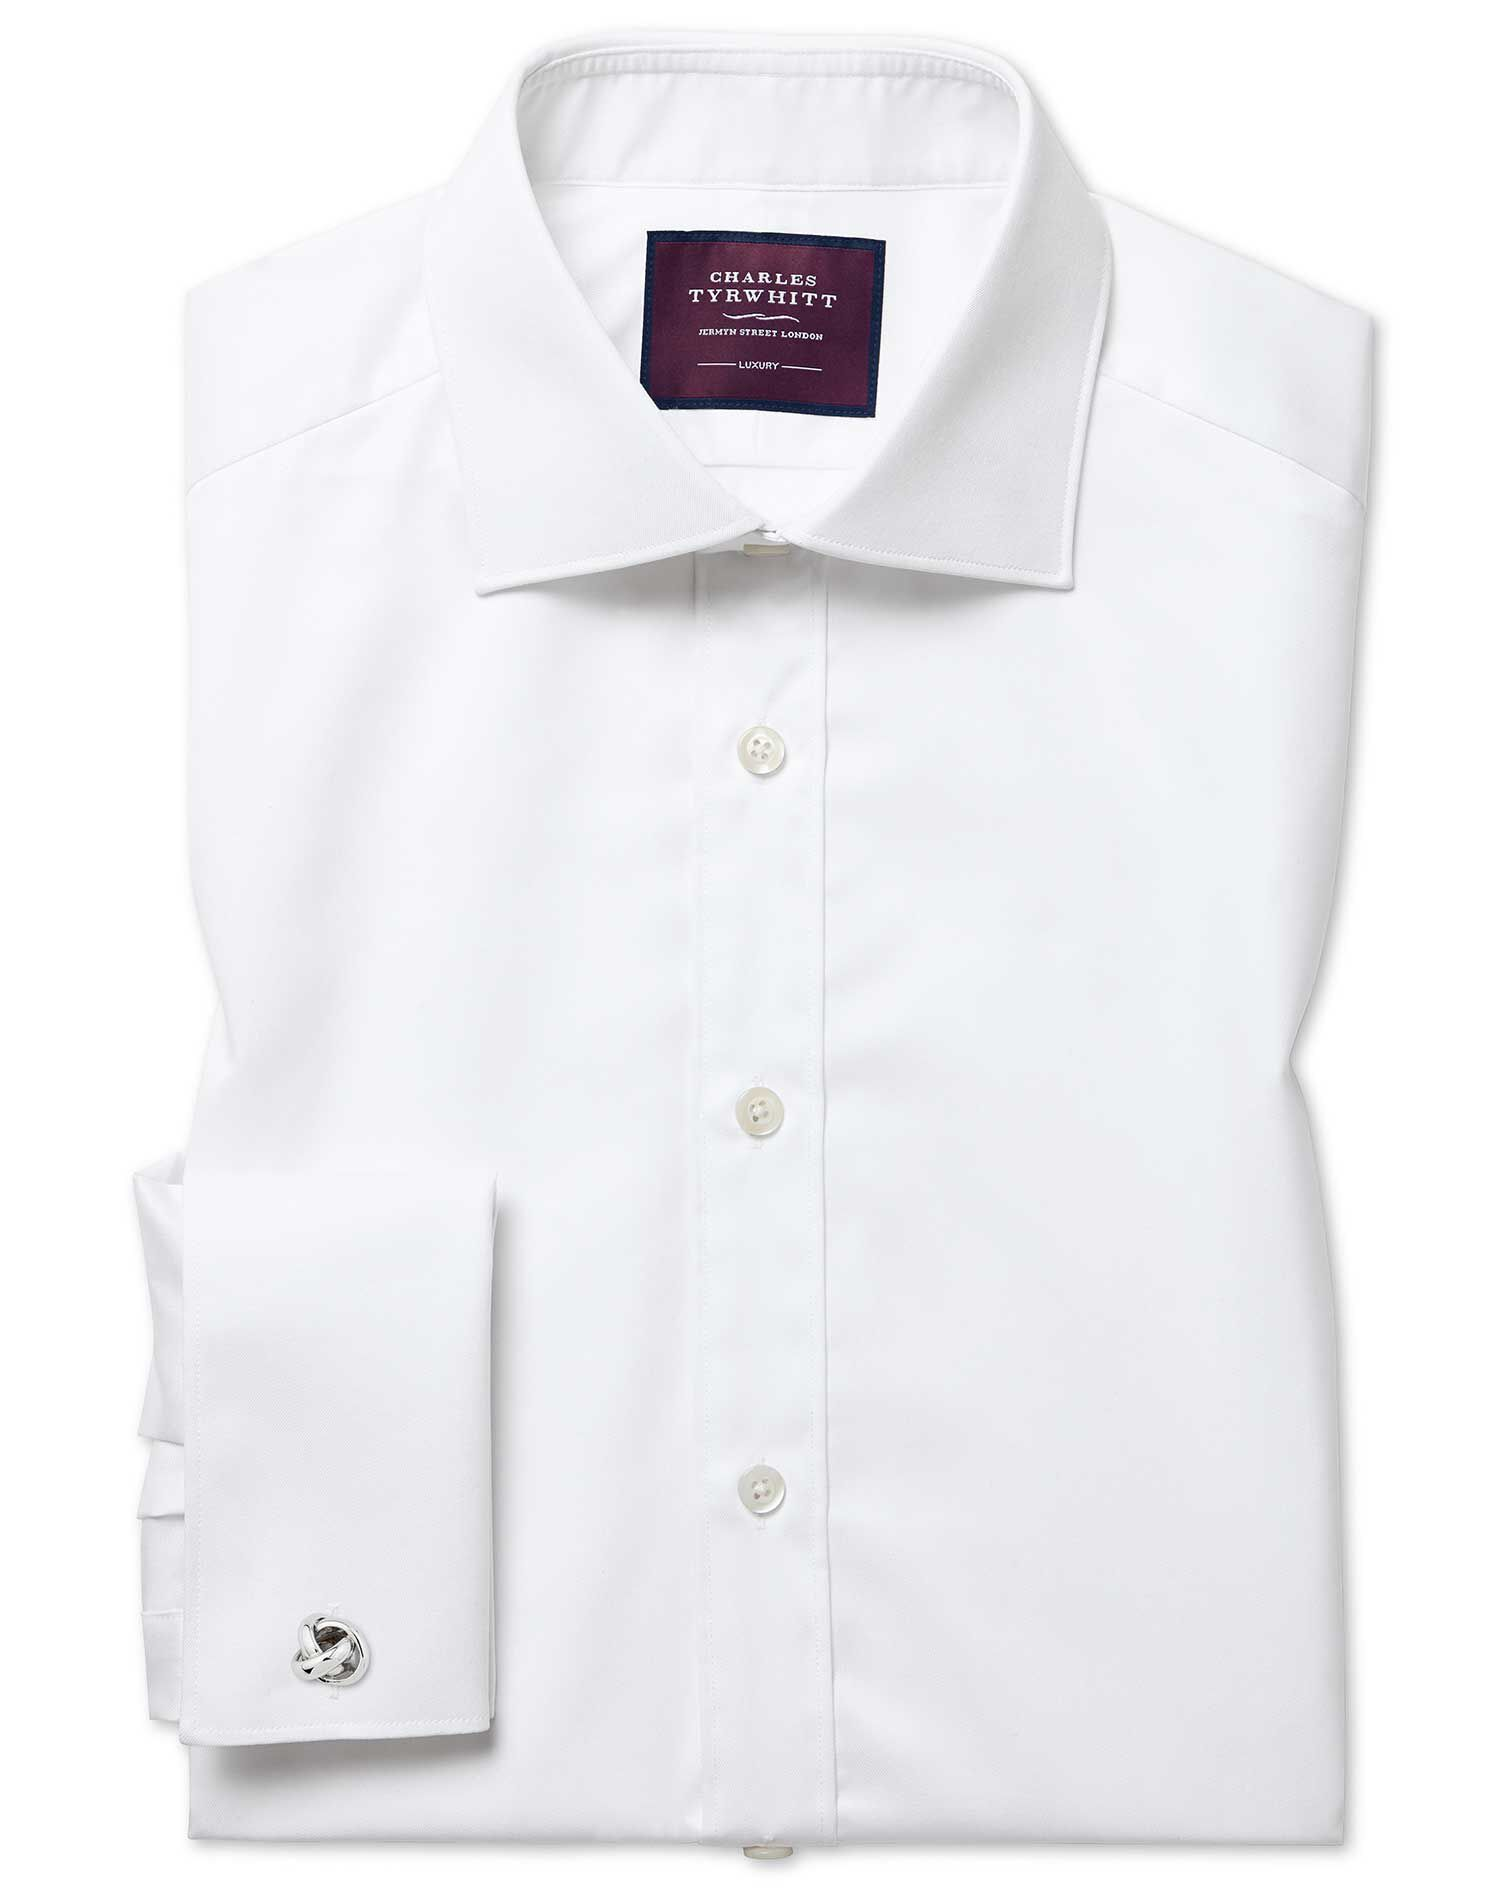 Classic Fit Semi-Cutaway Luxury Twill White Egyptian Cotton Formal Shirt Double Cuff Size 19/37 by C